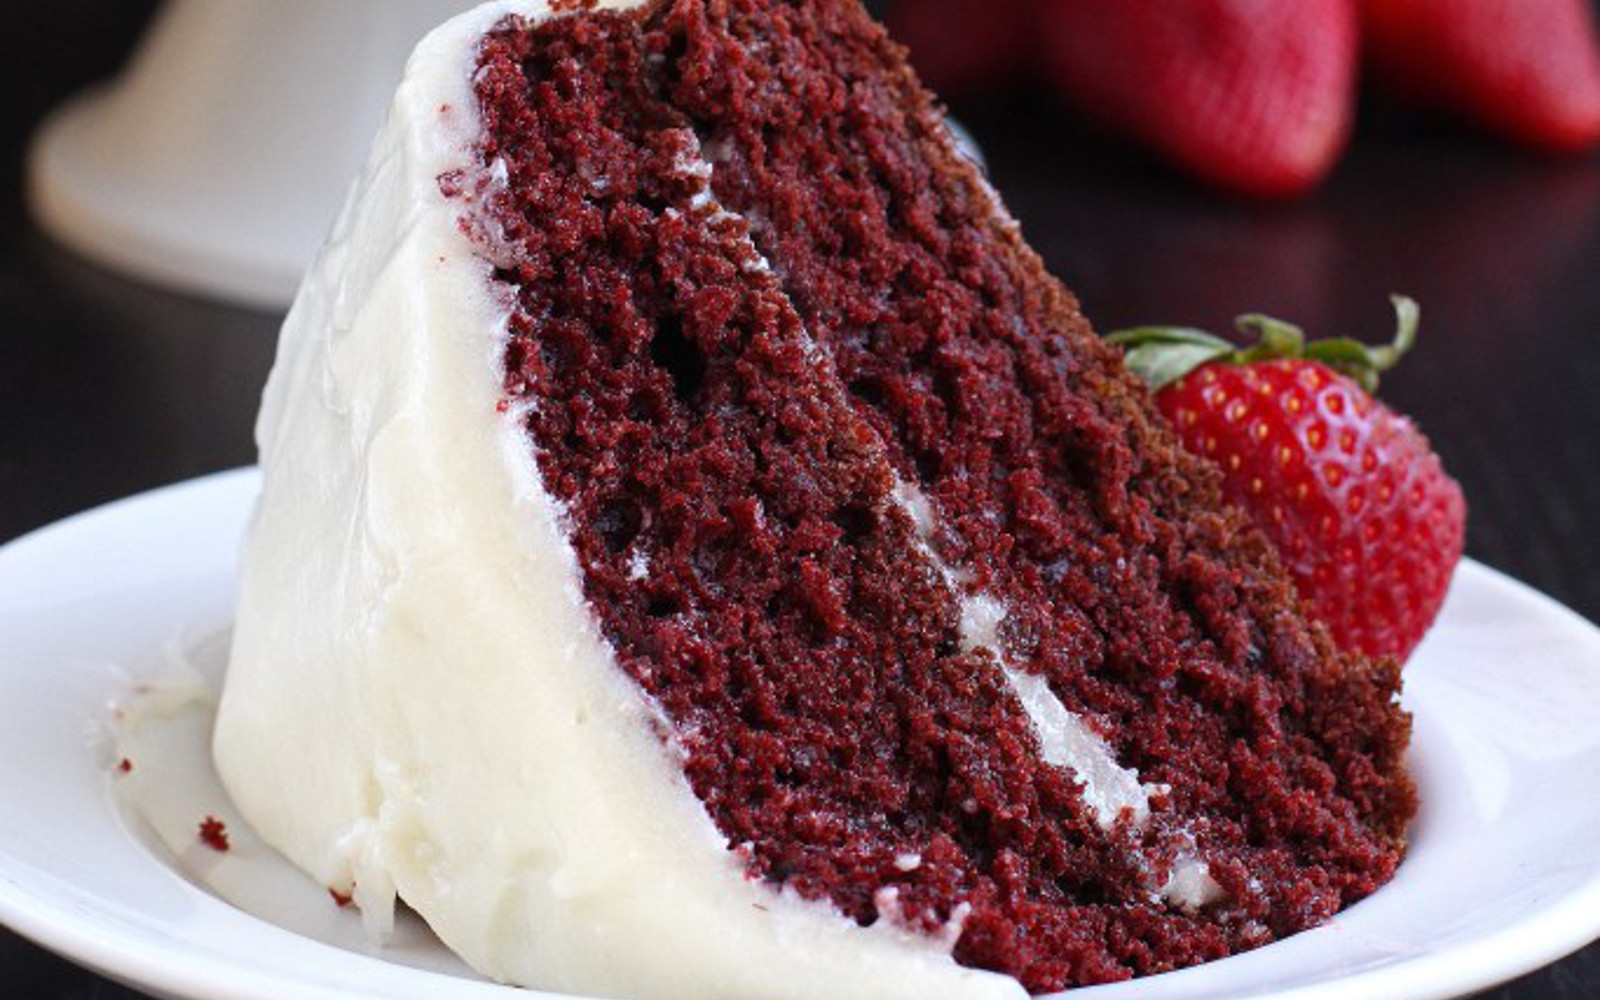 Vegan Gluten-Free Classic Red Velvet Cake with cream cheese frosting and strawberry